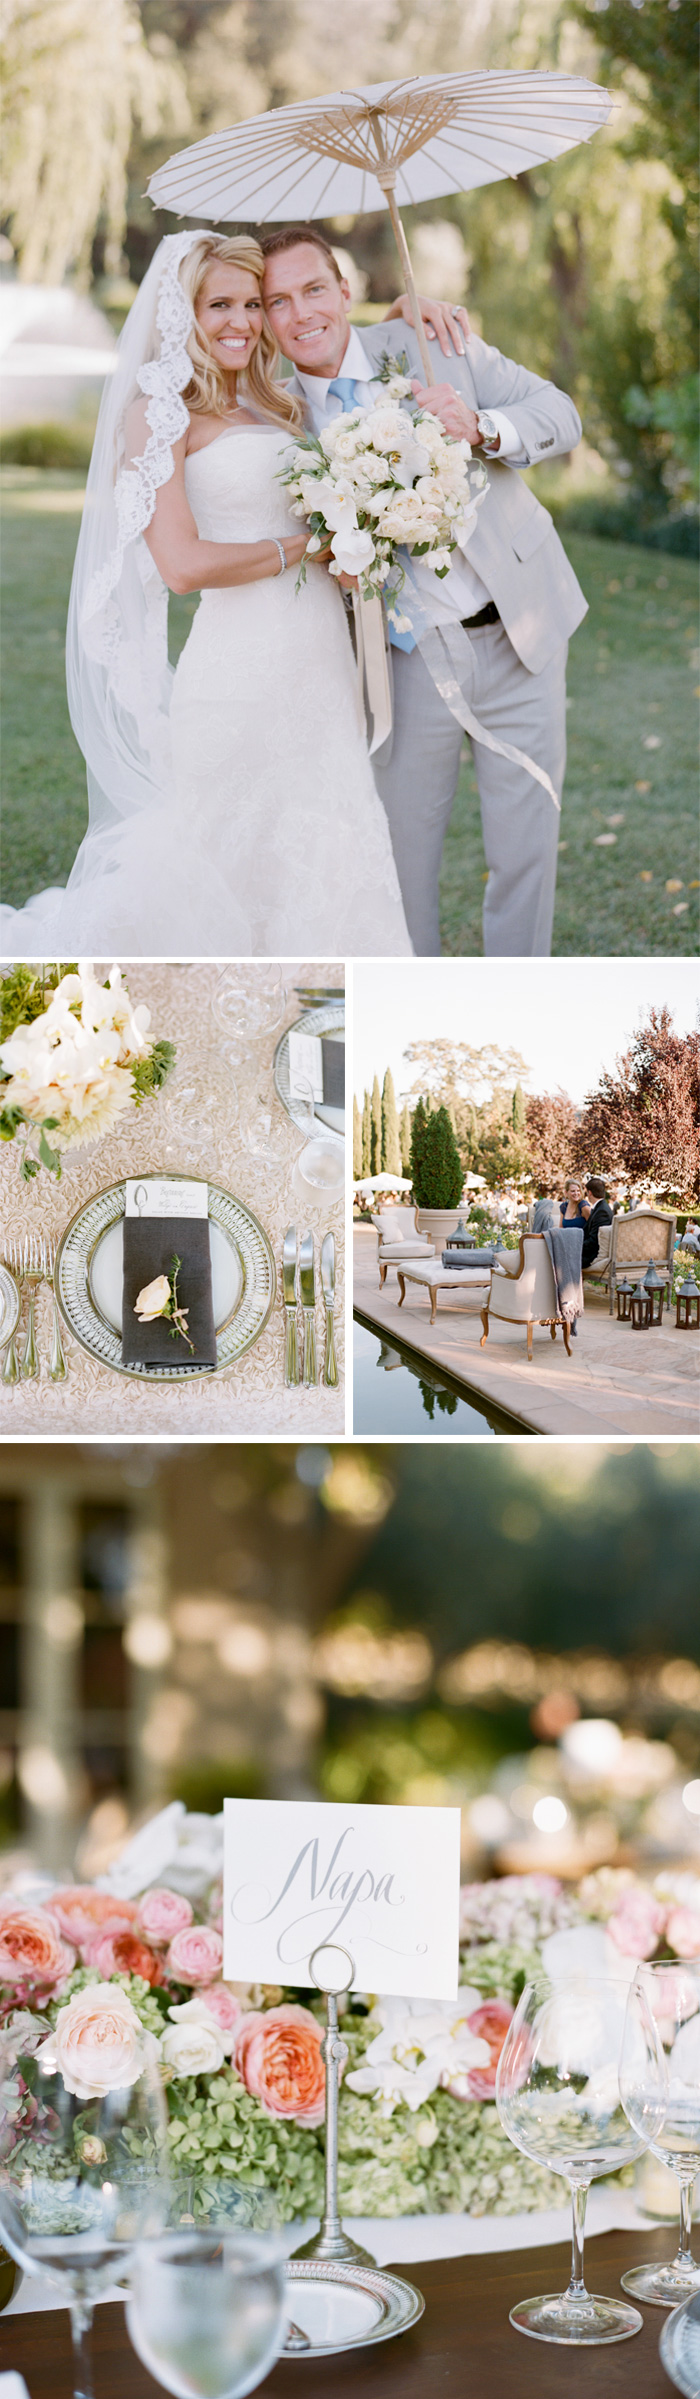 SylvieGIl-Film-Wedding-Photography-Black-Swan-Lake-Napa-Sonoma-California-Flowers-Table-Pool-reception-Place-Setting